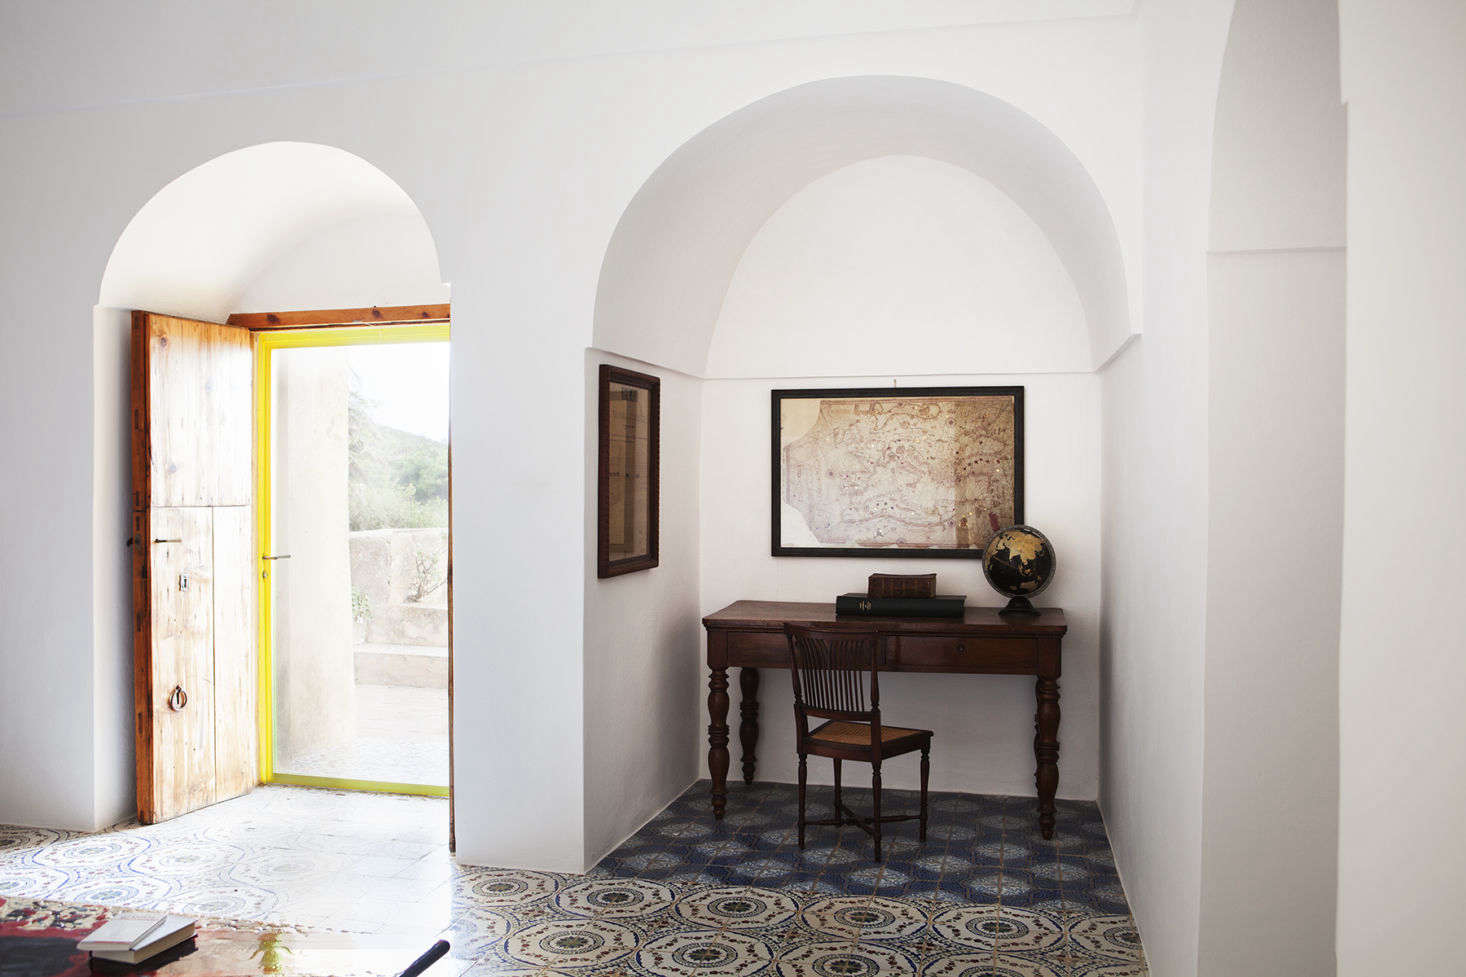 Pantelleria is geographically closer to Tunisia than to Italy, and it shows in the dominant architecture and interior style on the island.